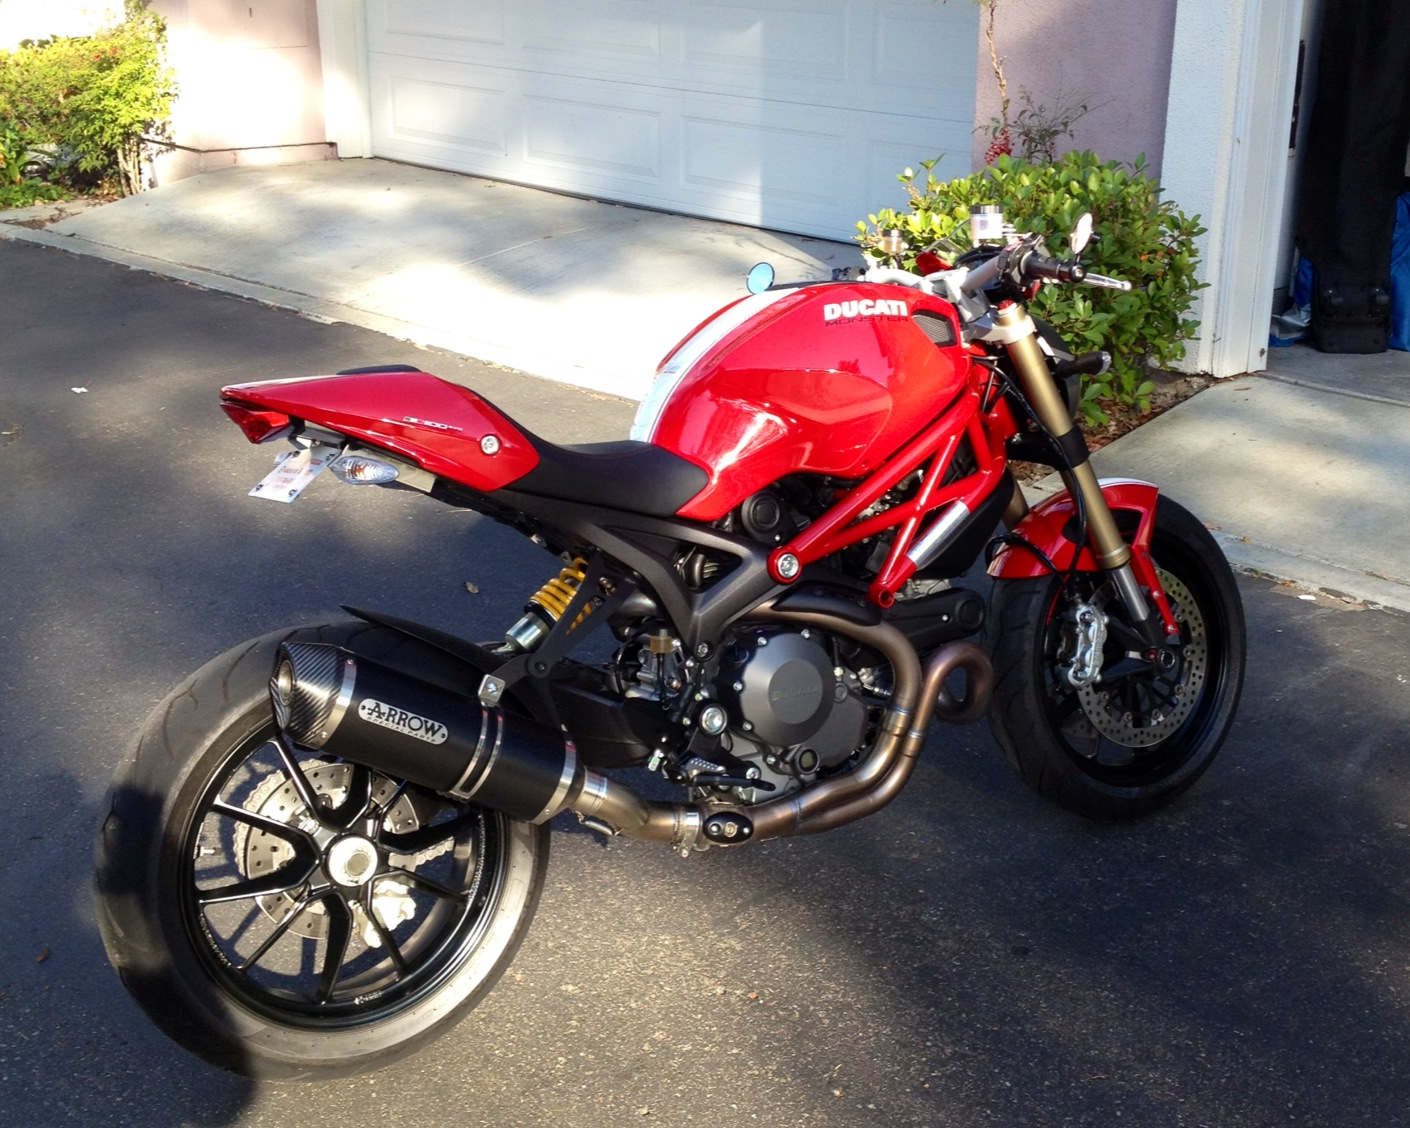 new ducati owner 2012 monster 1100 evo in san diego. Black Bedroom Furniture Sets. Home Design Ideas